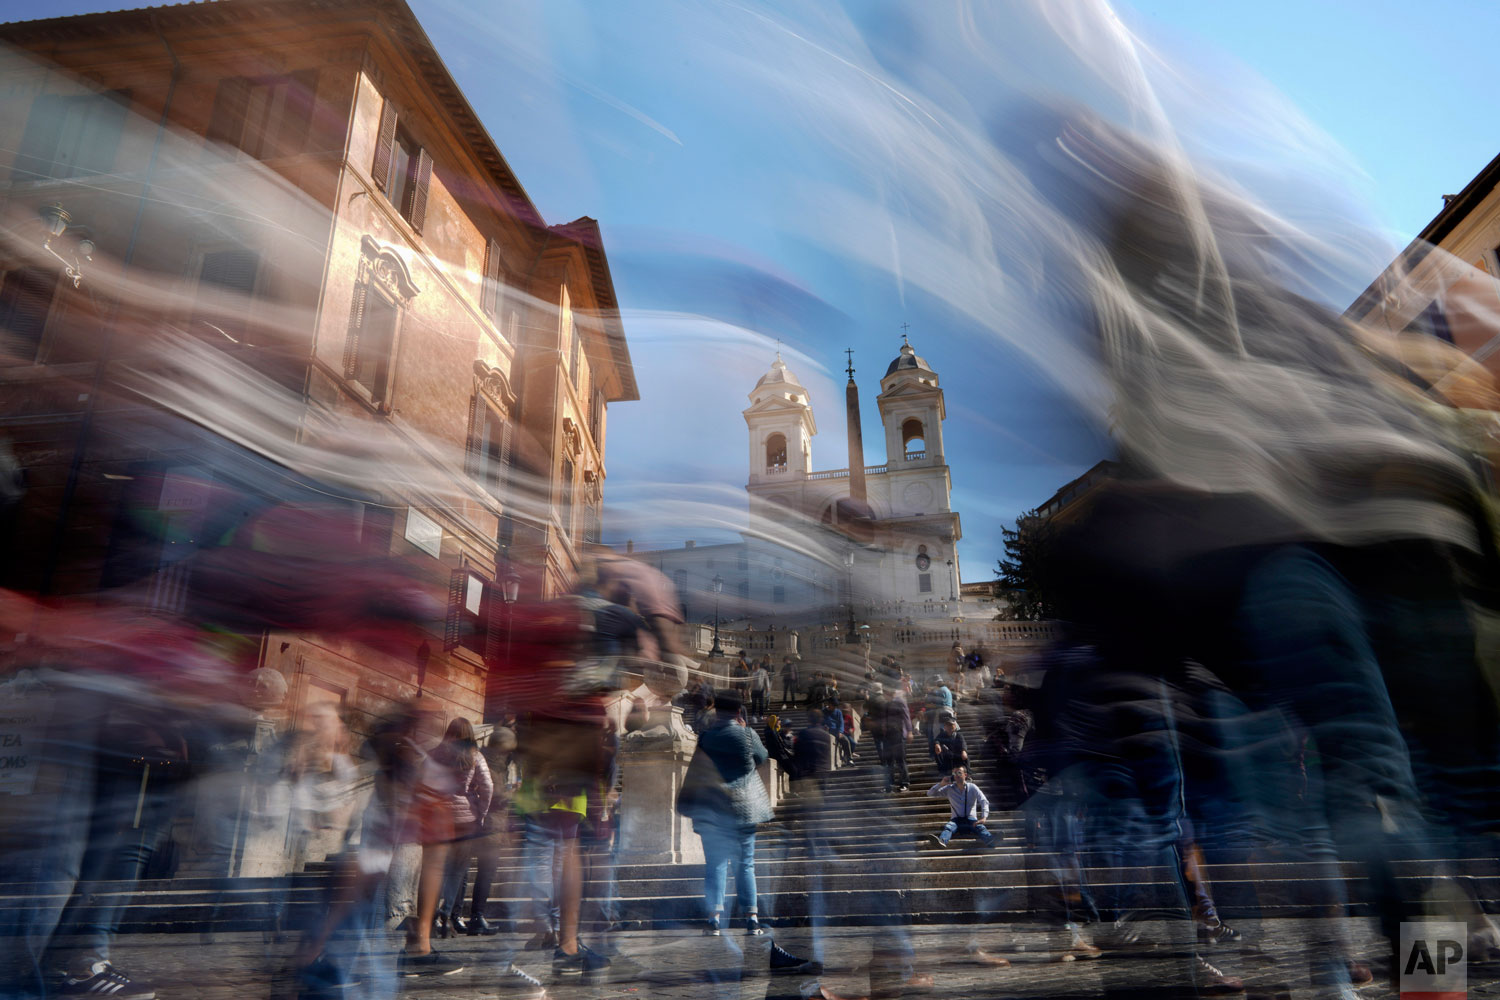 In this photo made with a long exposure, people walk by the Spanish Steps in Rome, Monday, March 25, 2019. (AP Photo/Andrew Medichini)